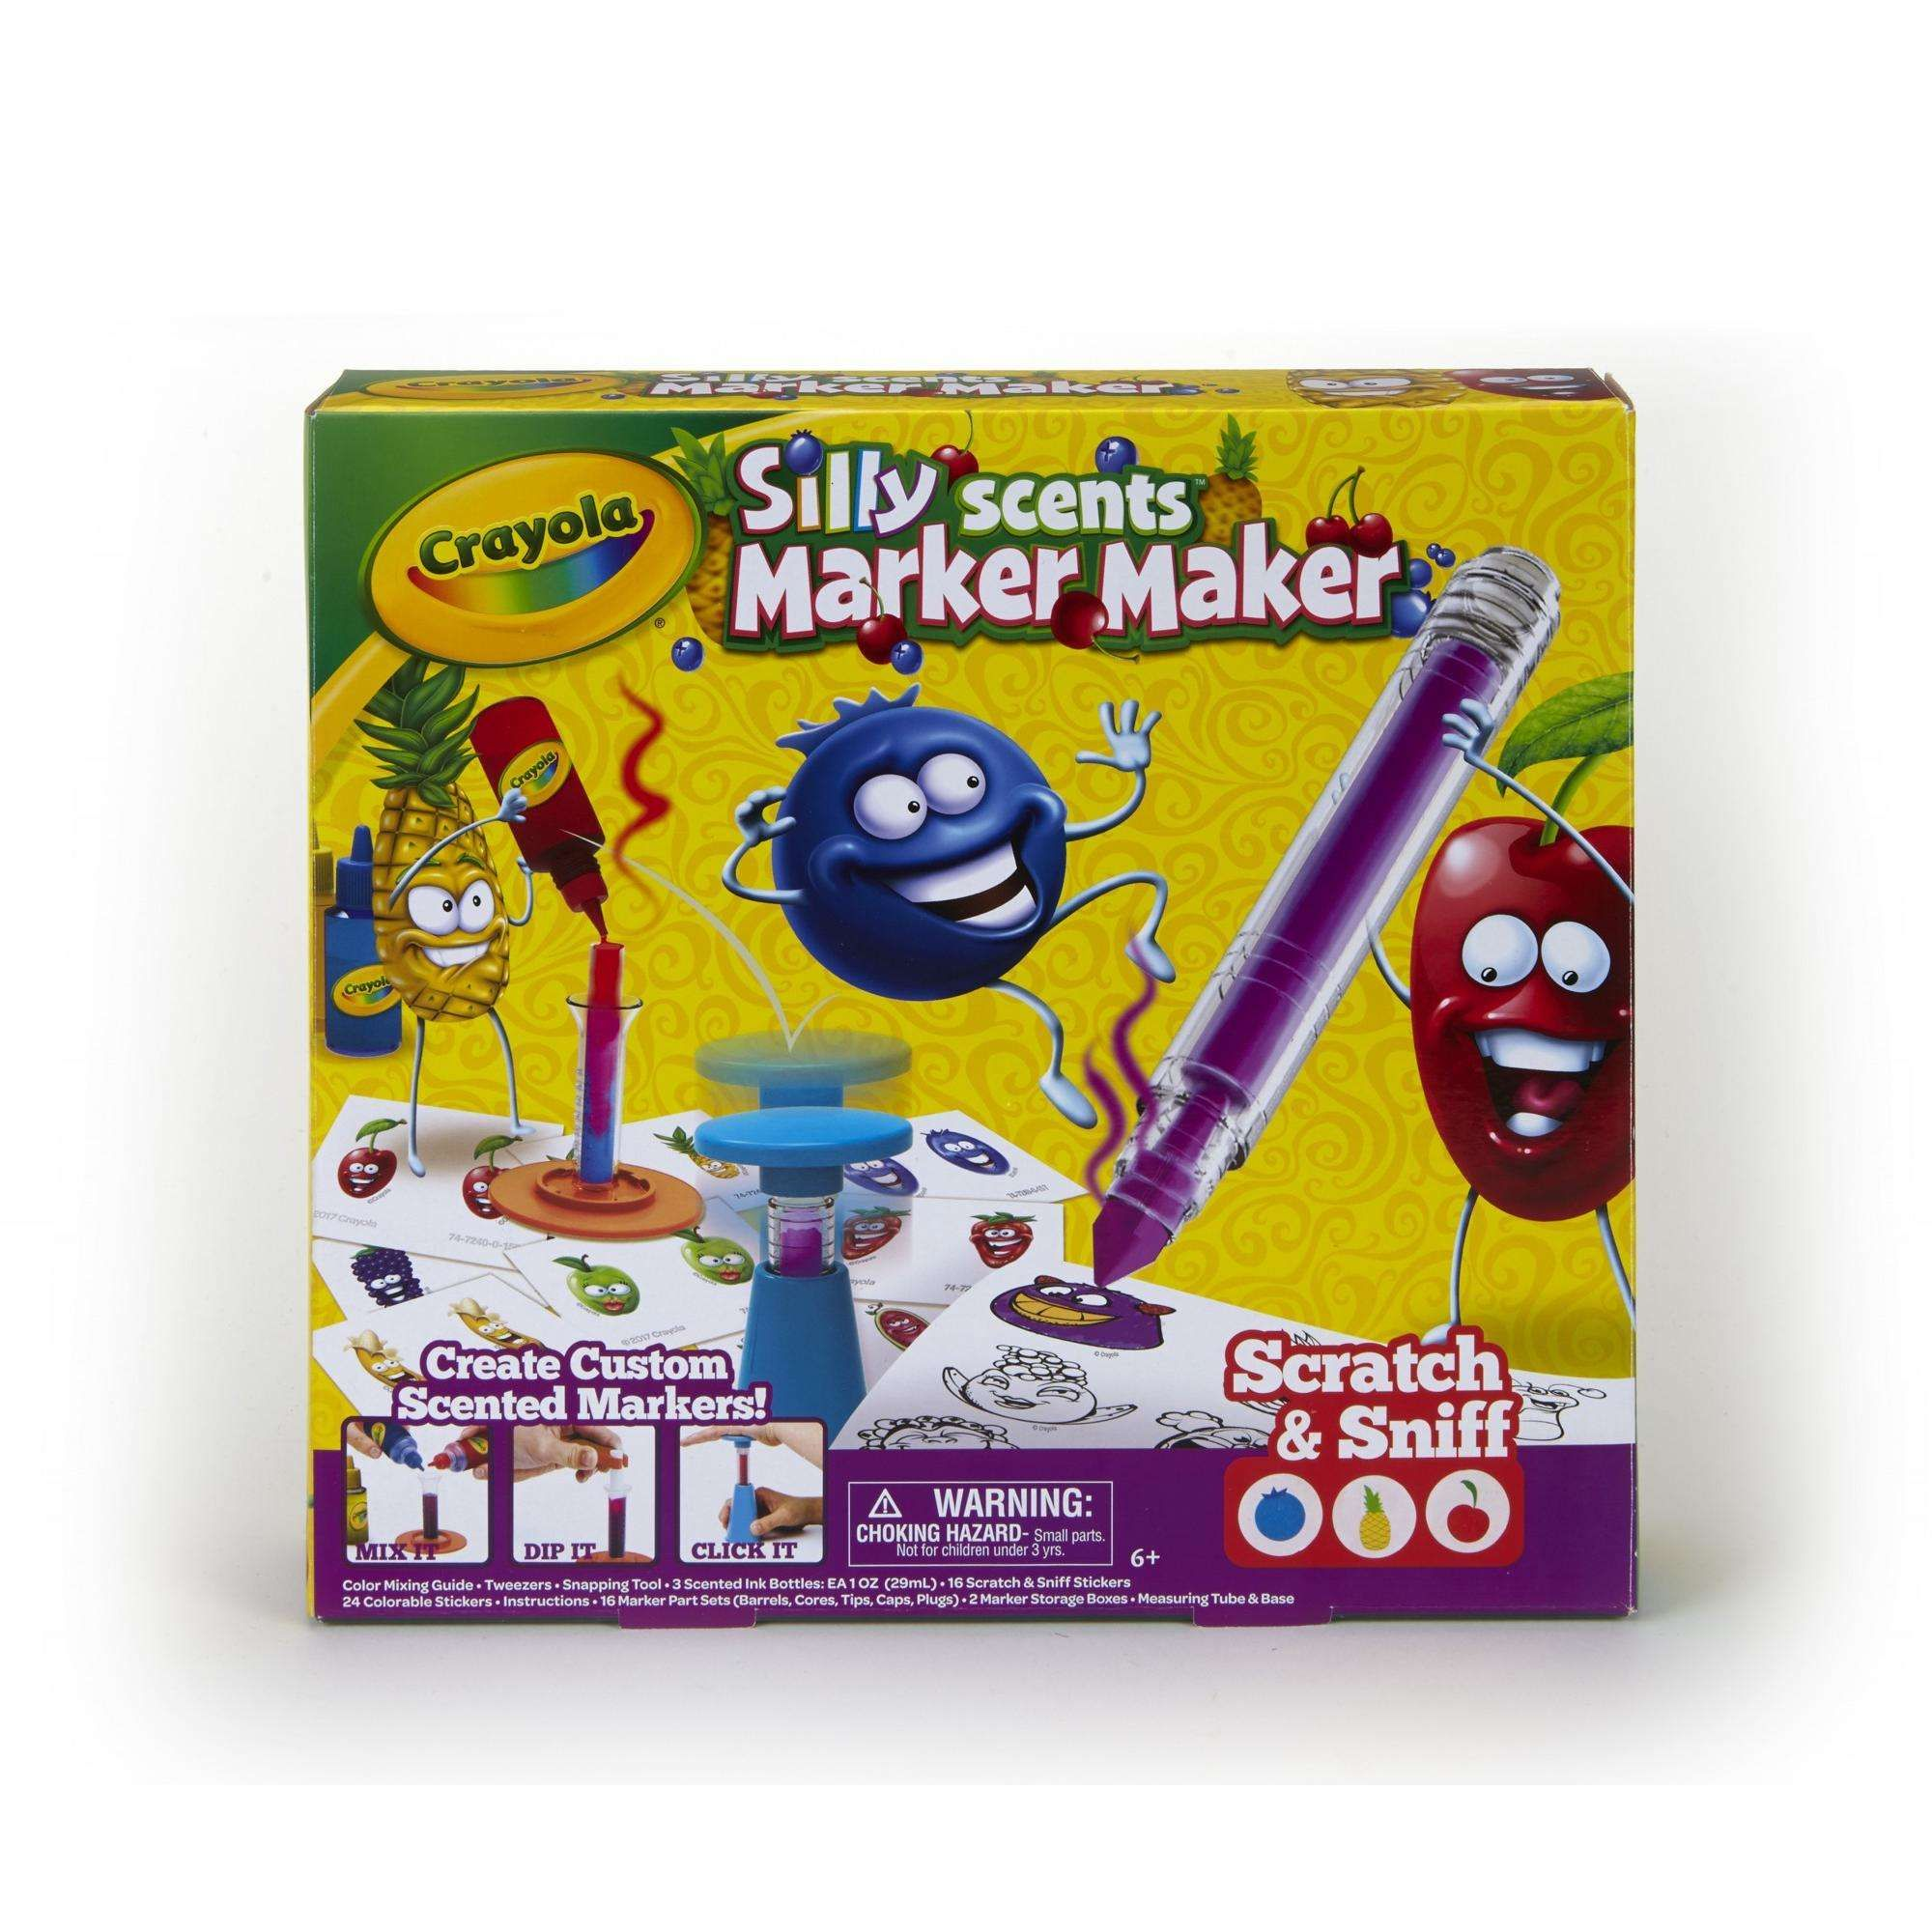 Crayola silly scents marker maker scented markers gift